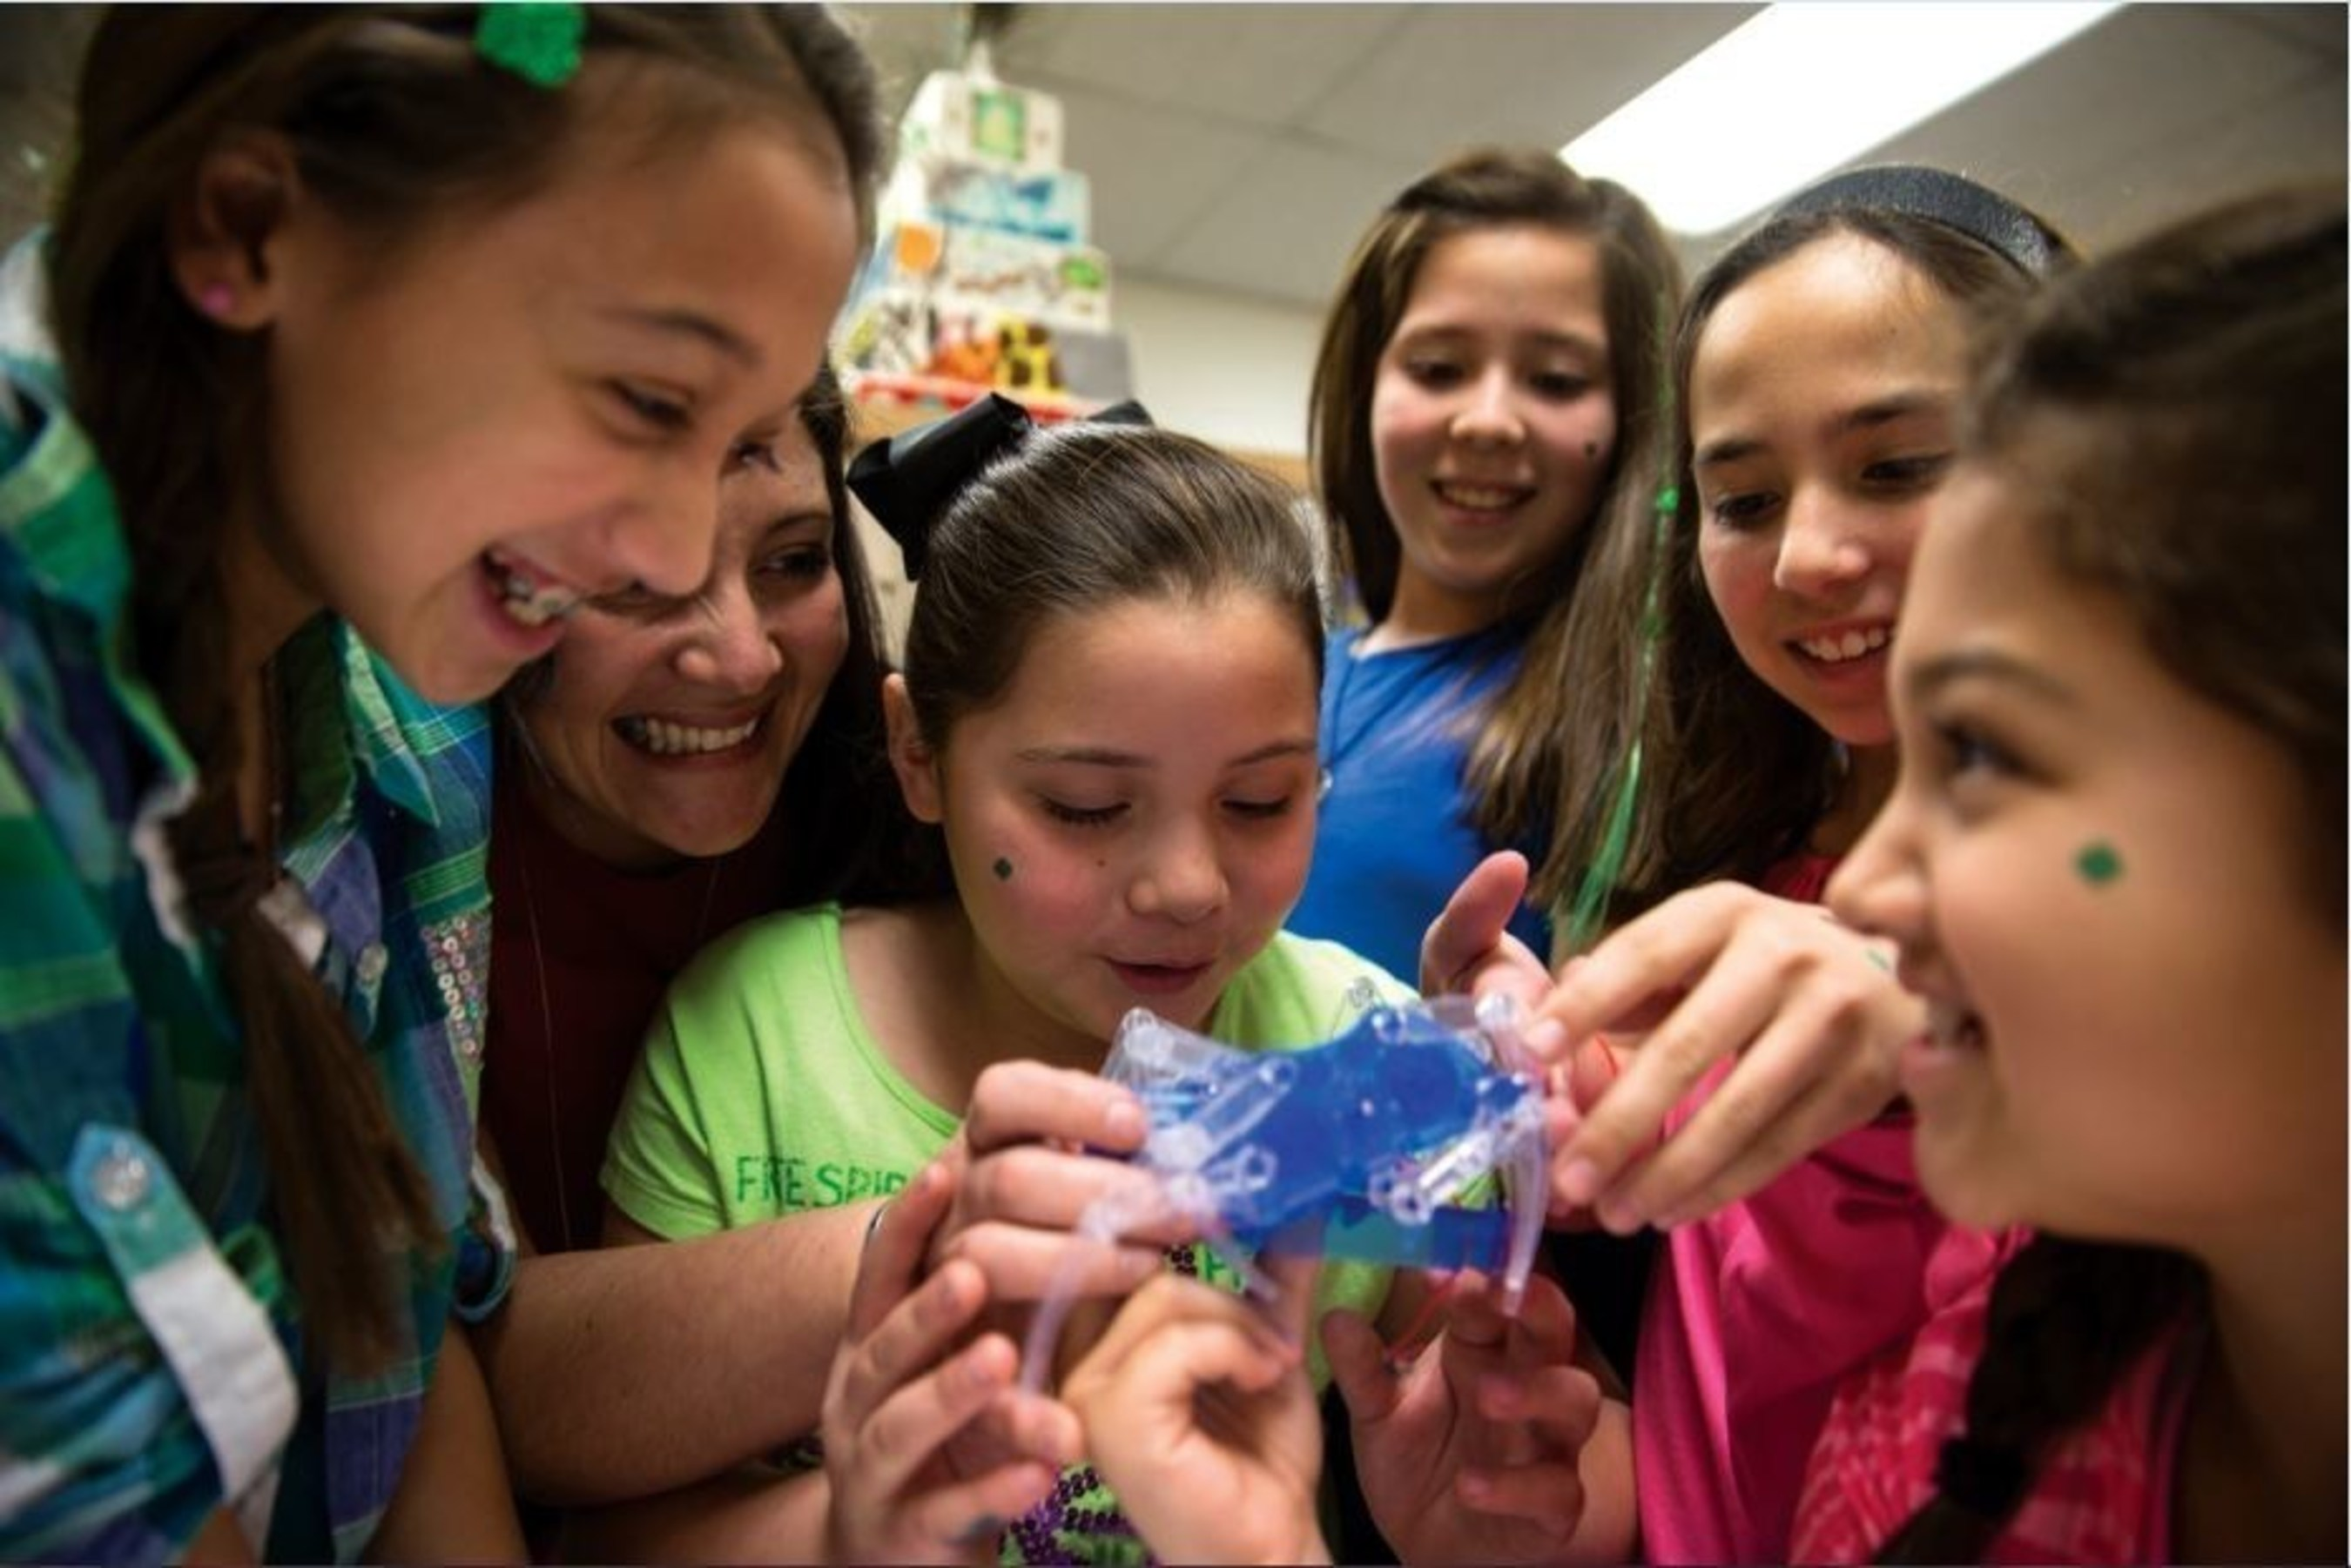 To learn more about Girl Scouts in STEM, visit girlscouts.org/STEM.